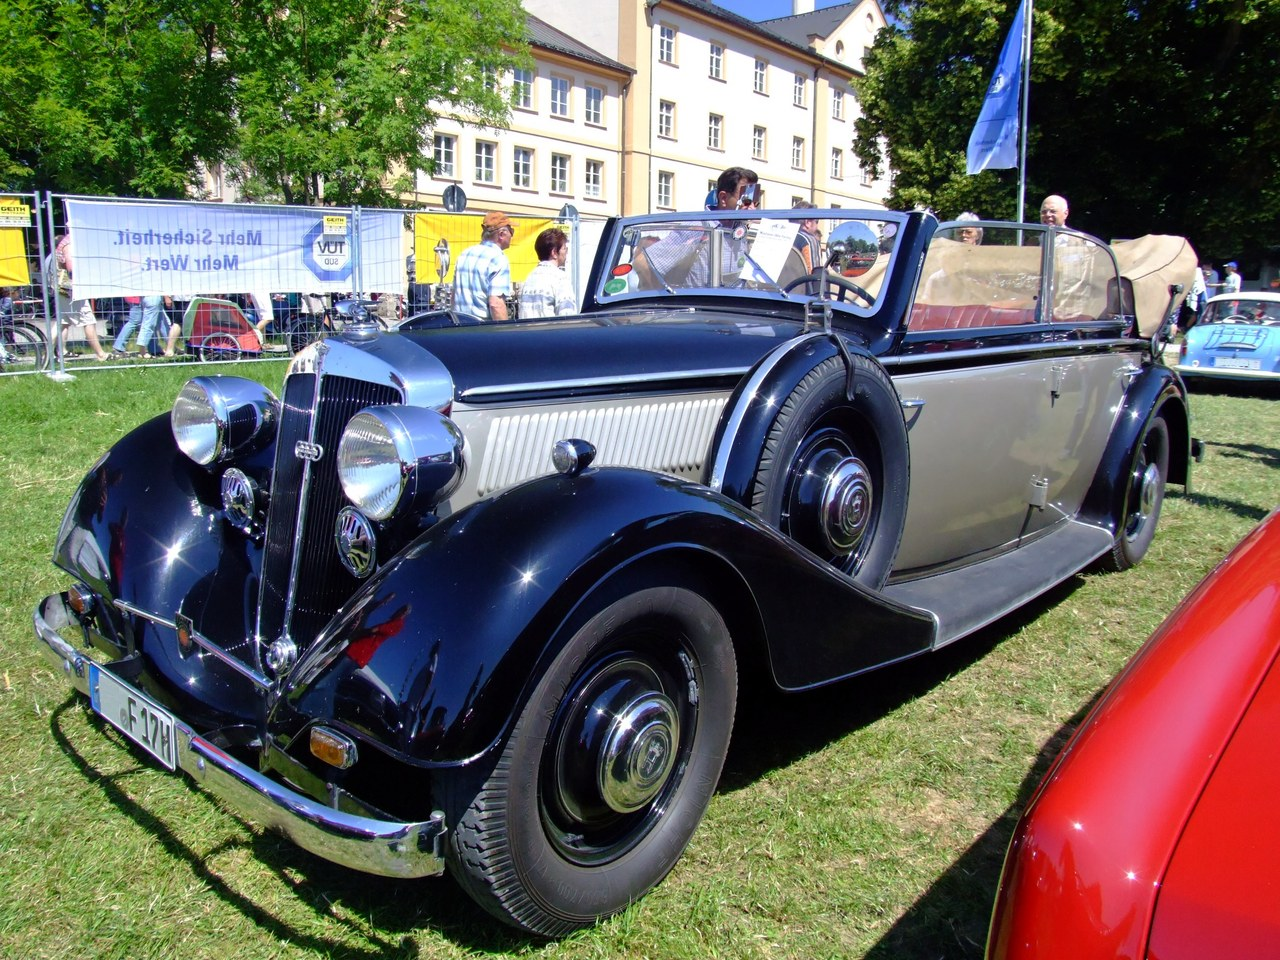 Horch 830bl photo - 4